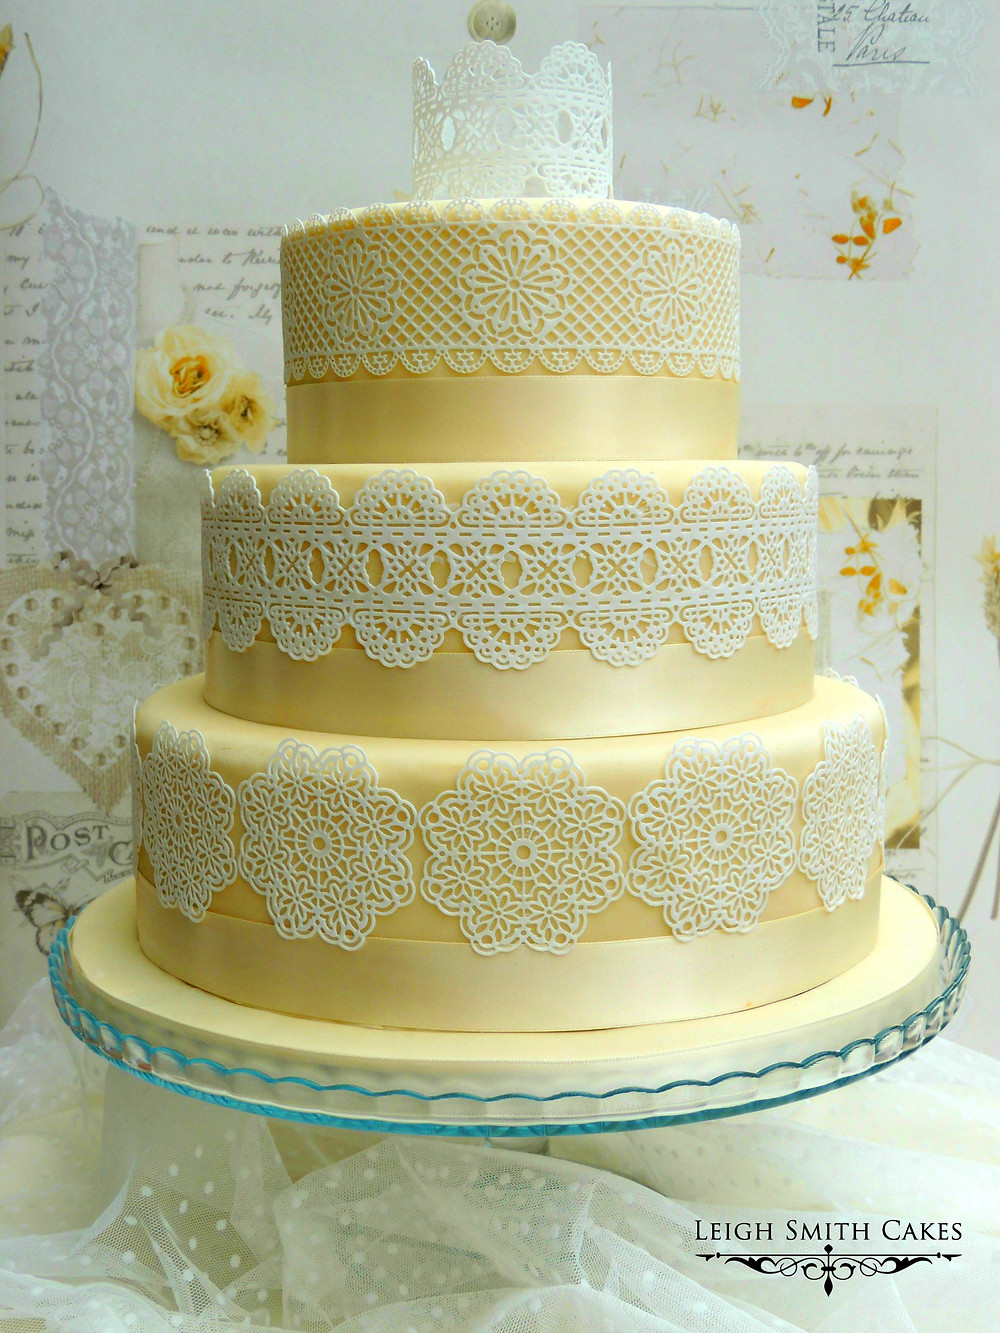 Wedding cake decorated with cake lace